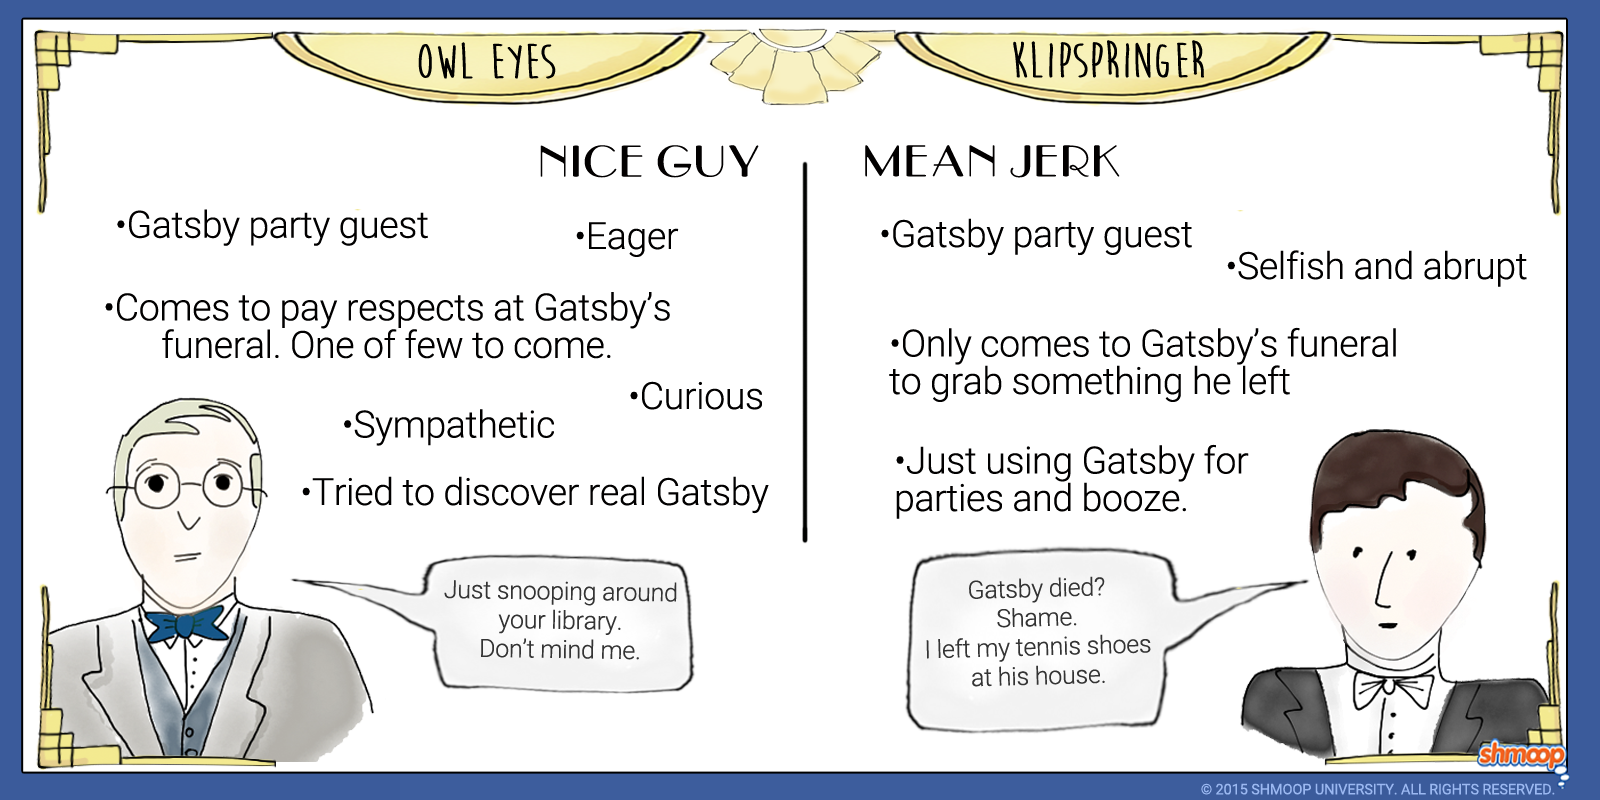 Quotes From The Great Gatsby Owl Eyes And Klipspringer In The Great Gatsby